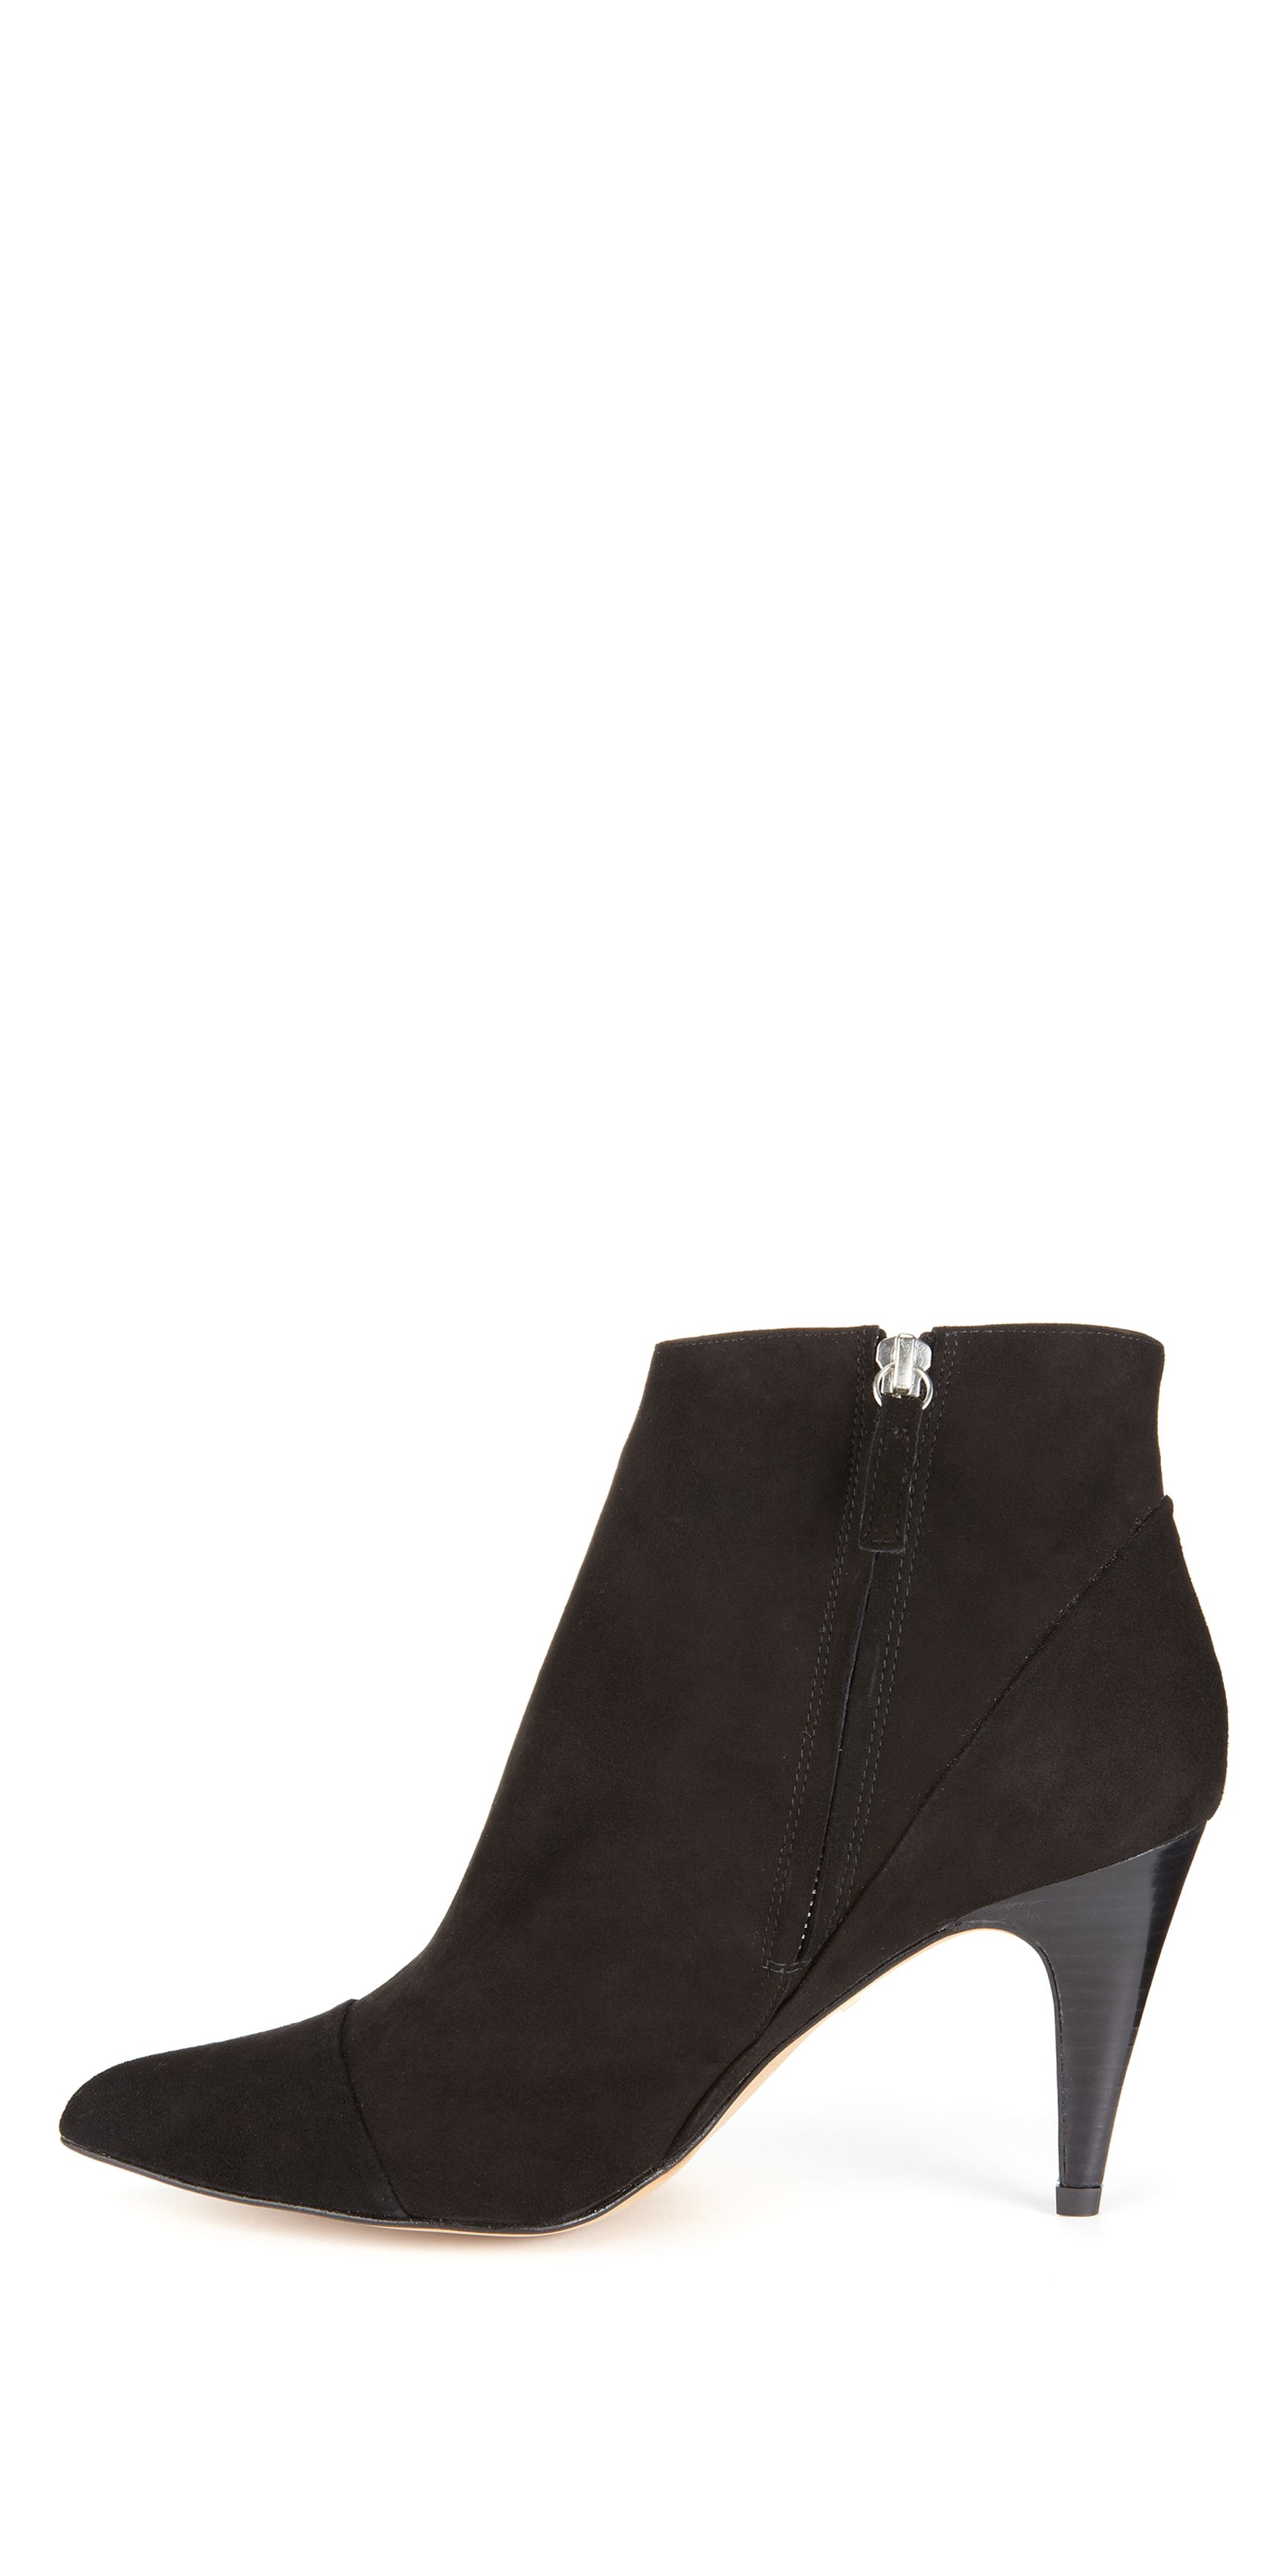 Claudia point ankle boot